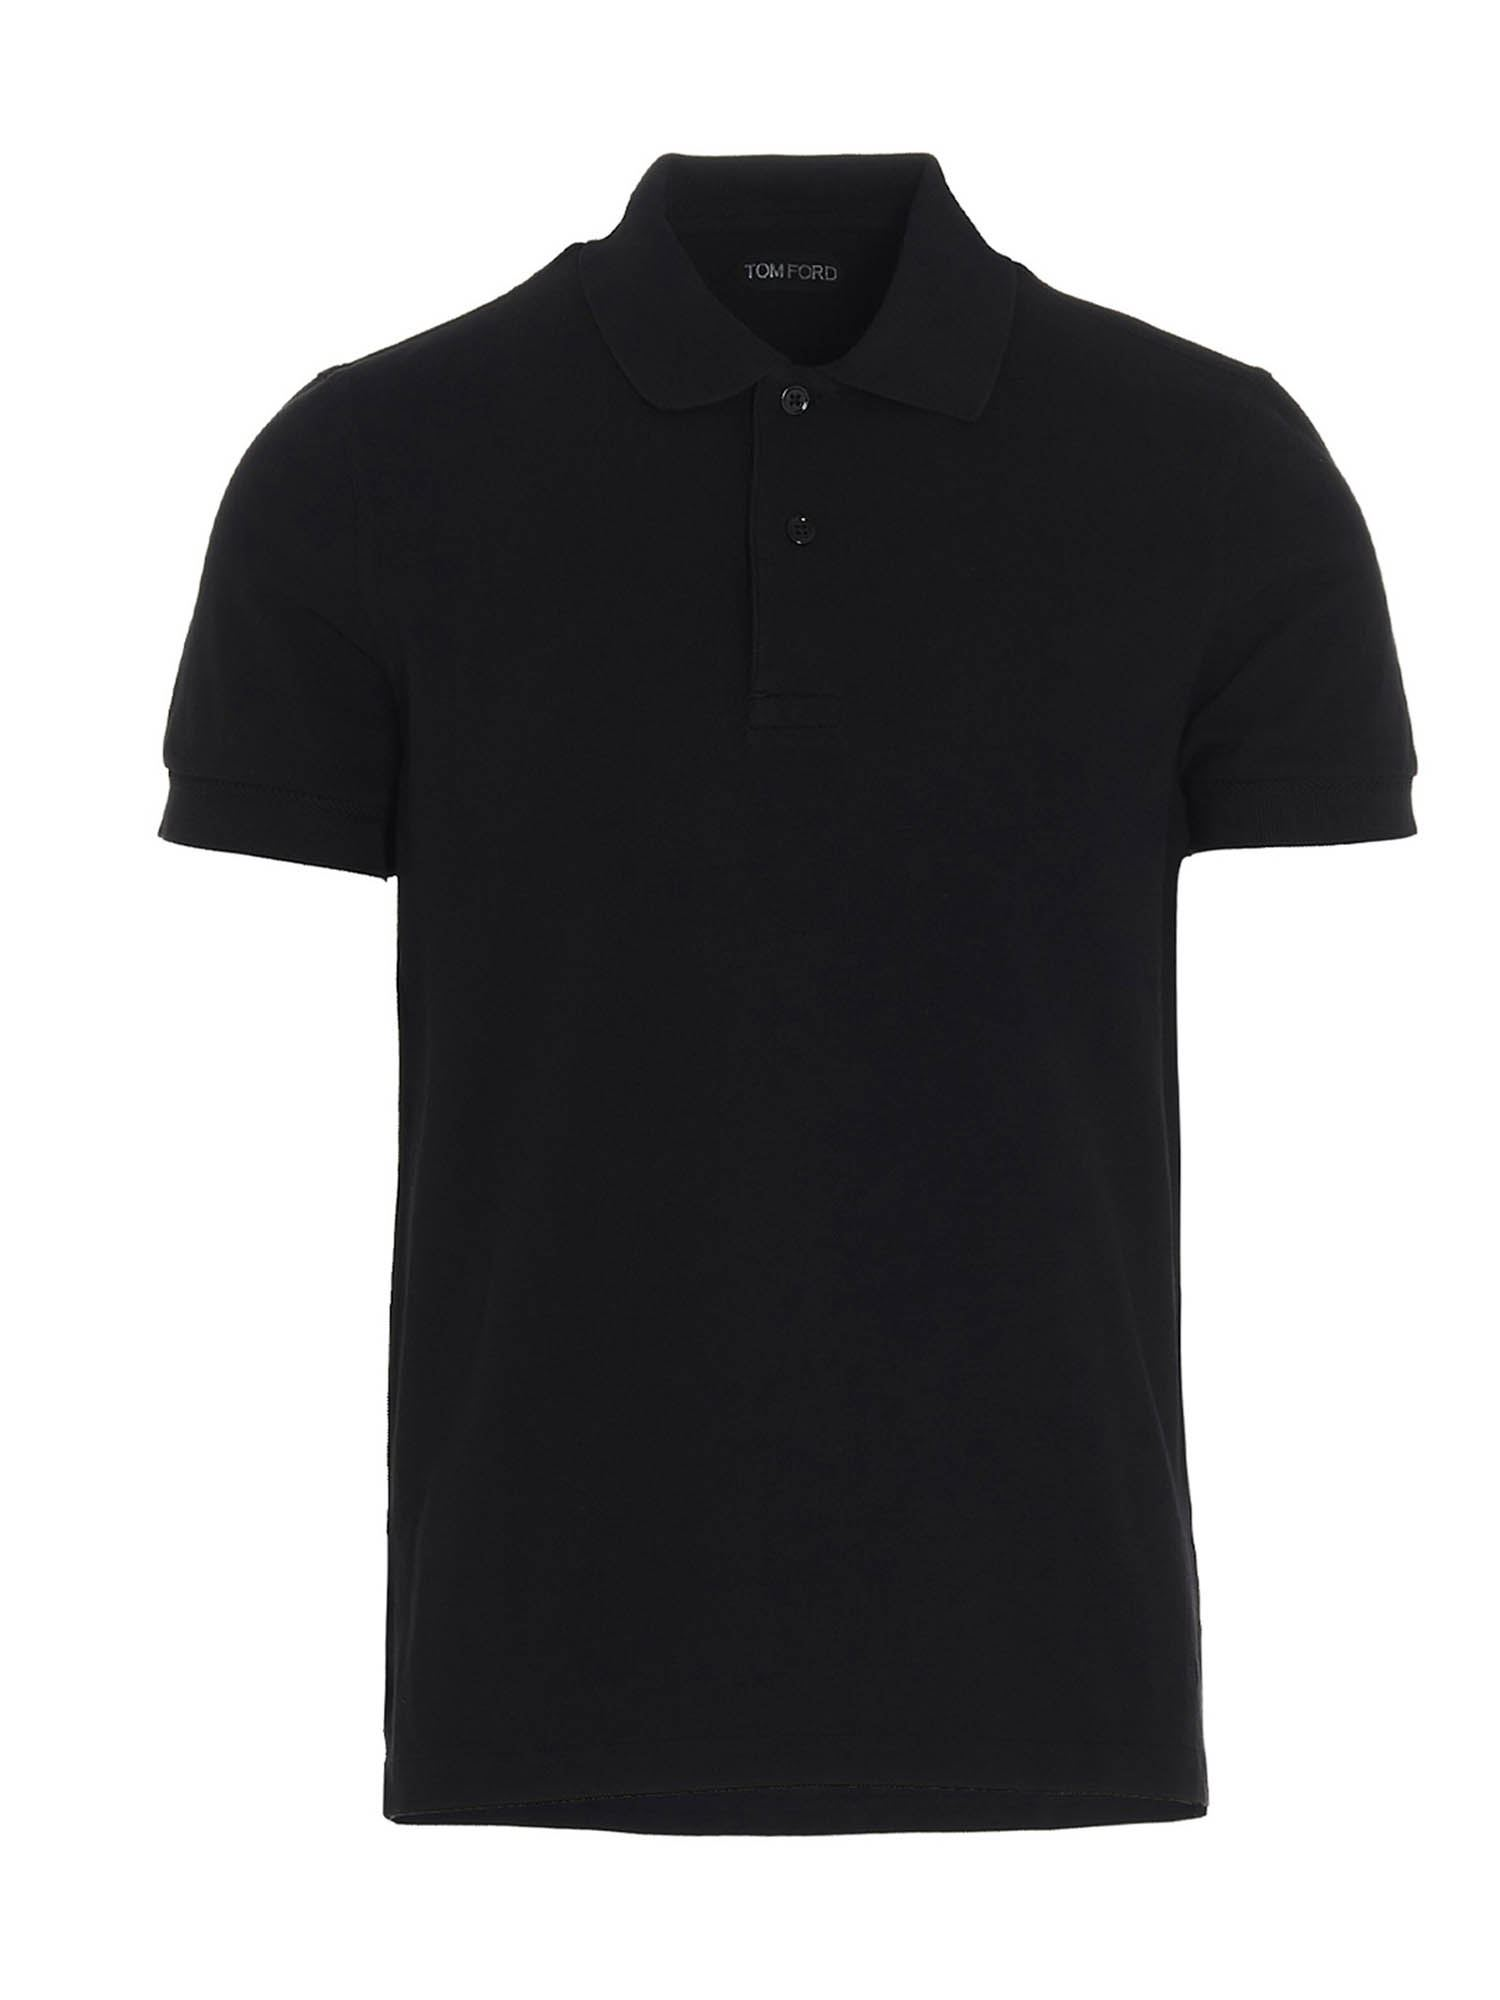 TOM FORD COTTON POLO SHIRT IN BLUE